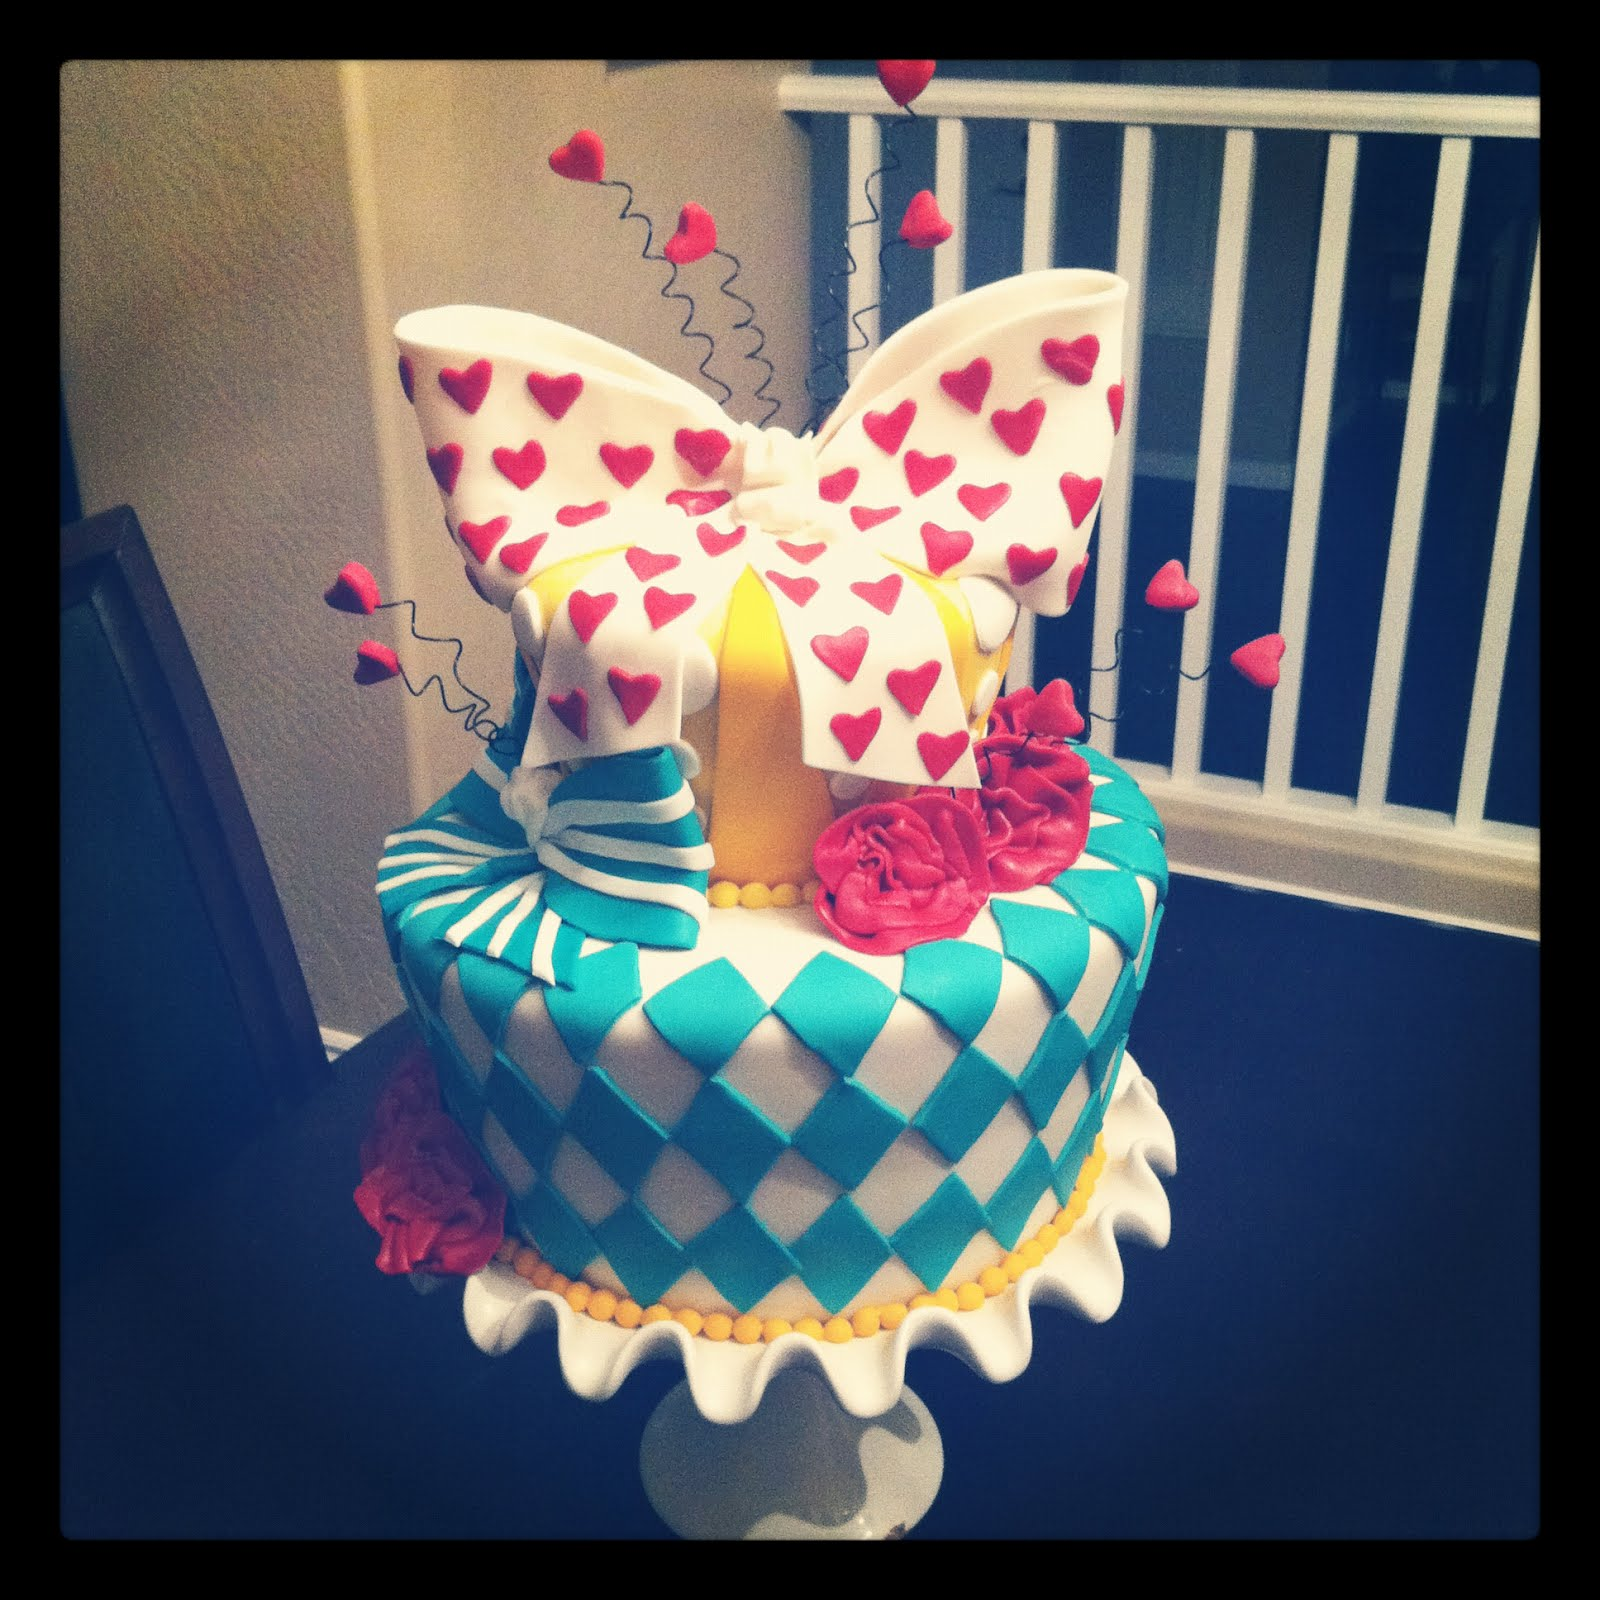 SASSY CAKES Your Fondant Cake Design Destination Alice in